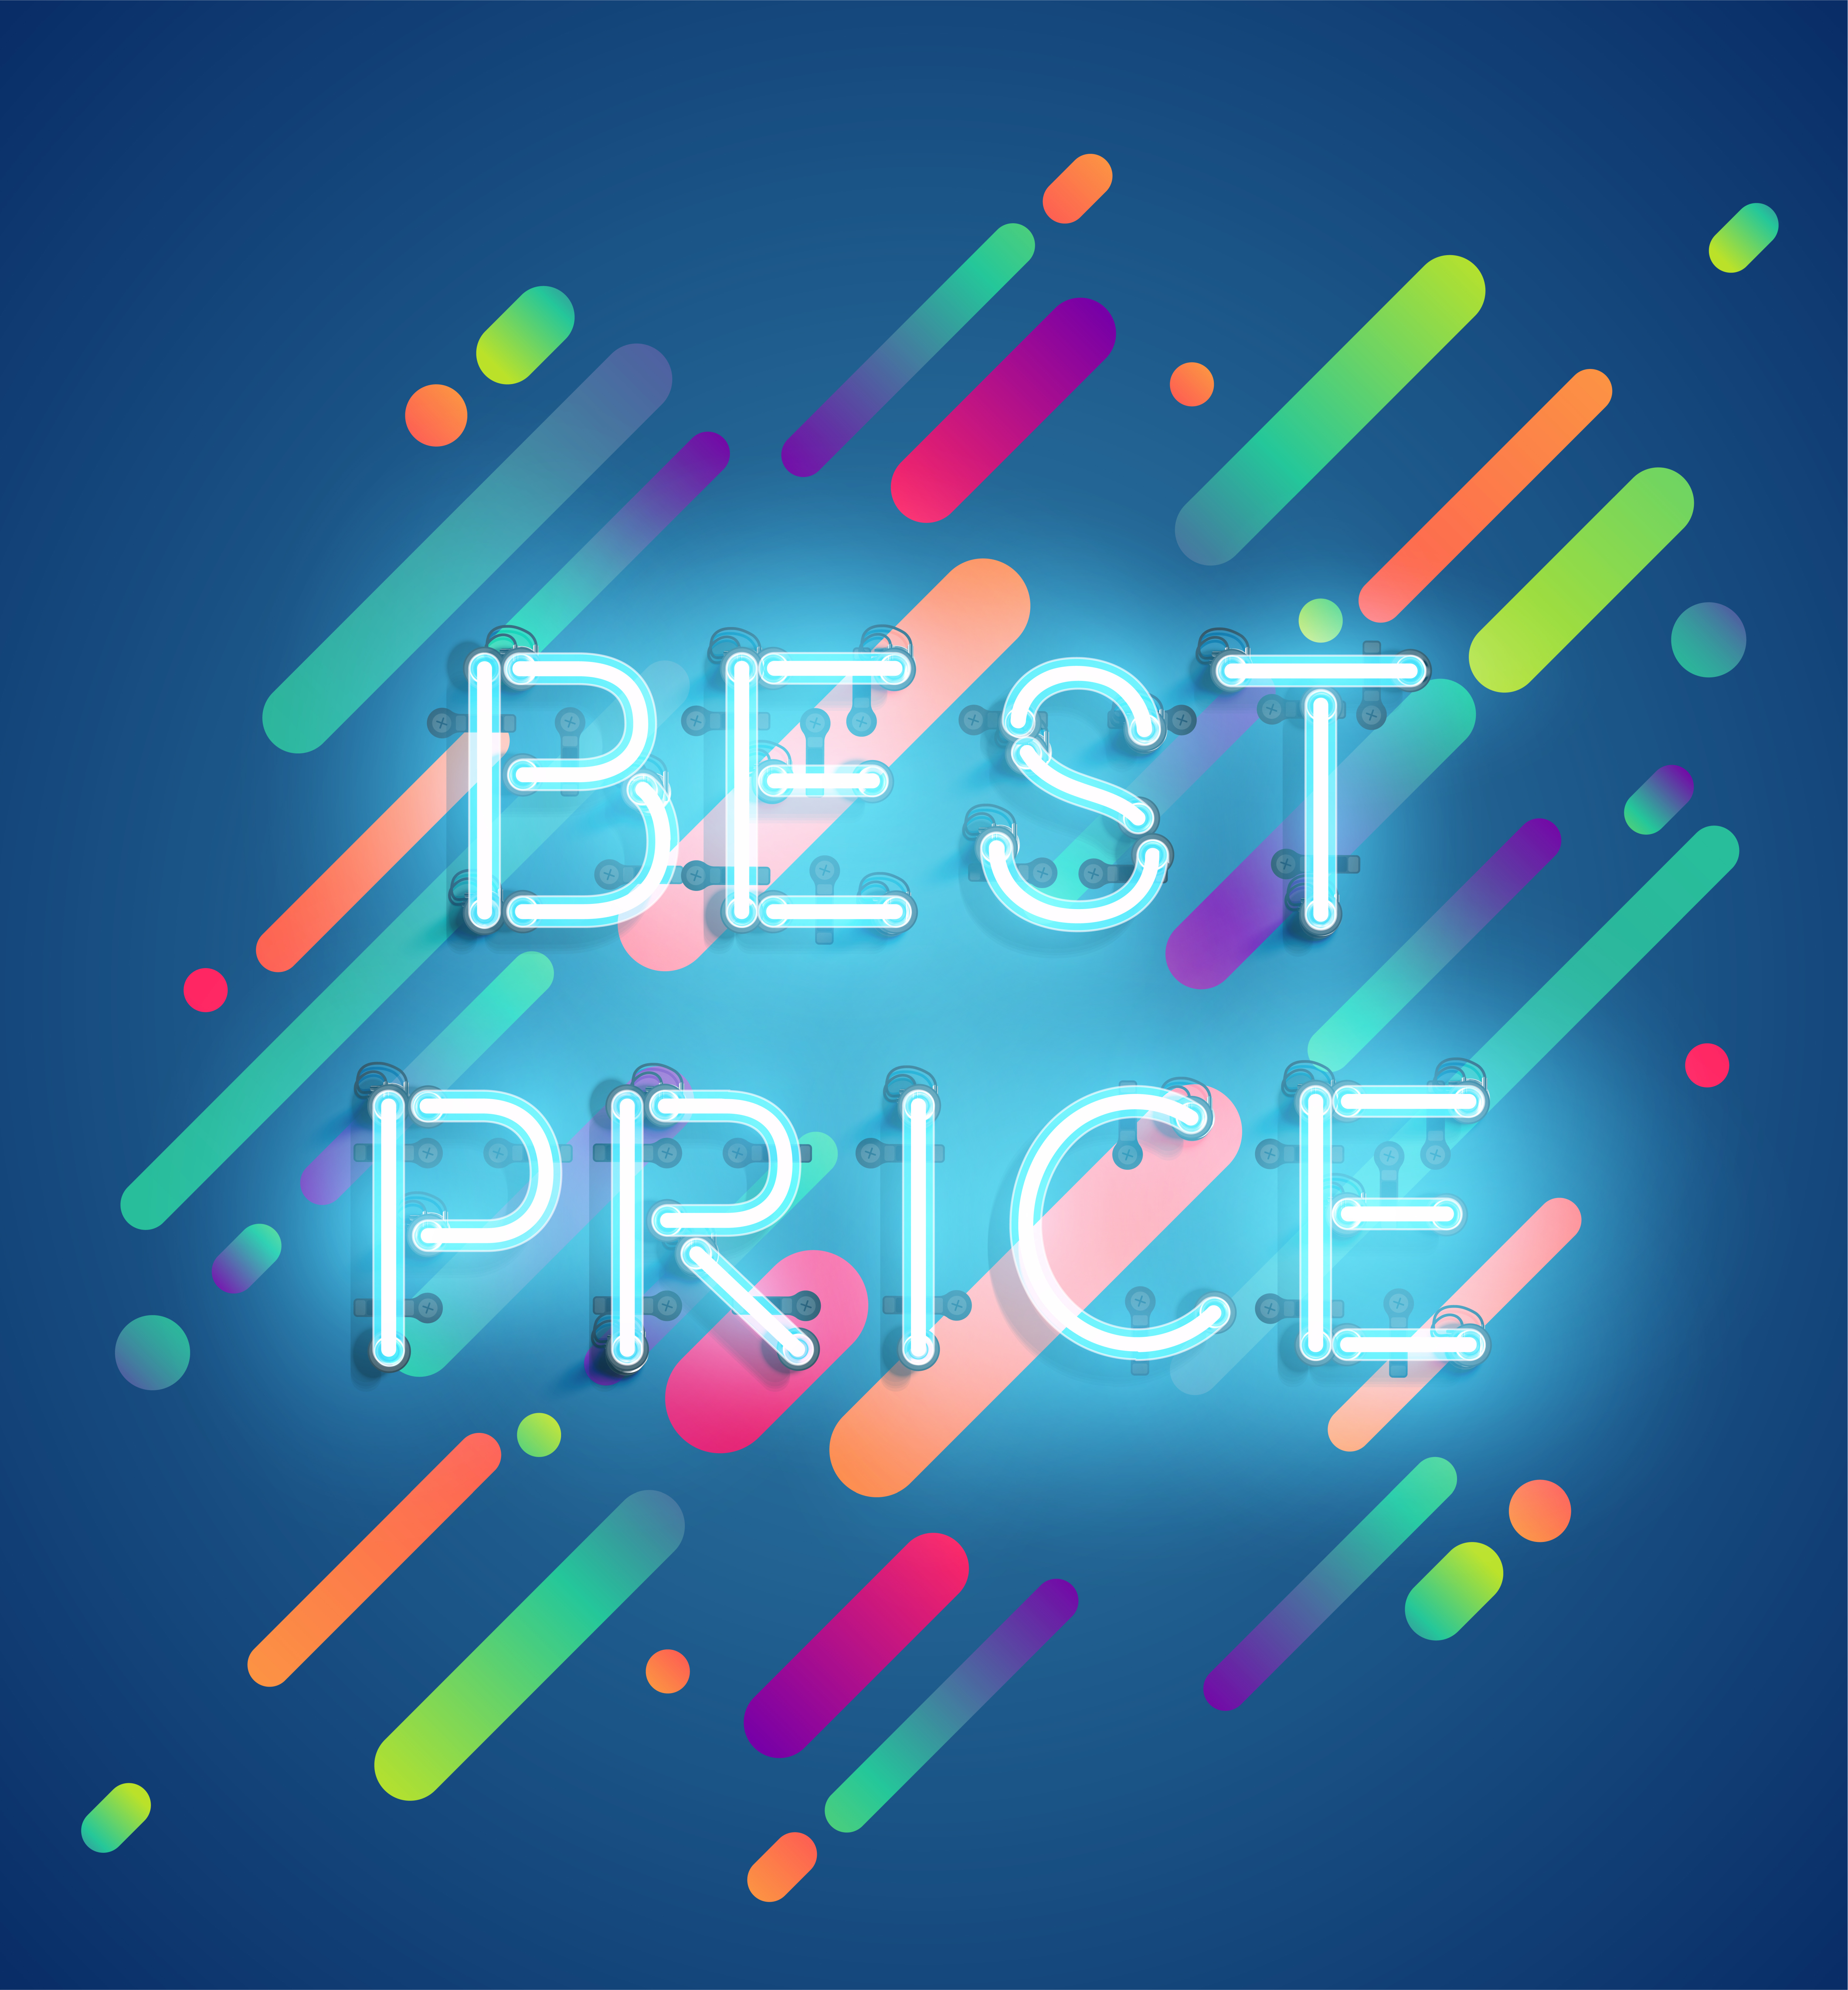 Neon word on colorful background vector illustration Download Free Vectors Clipart